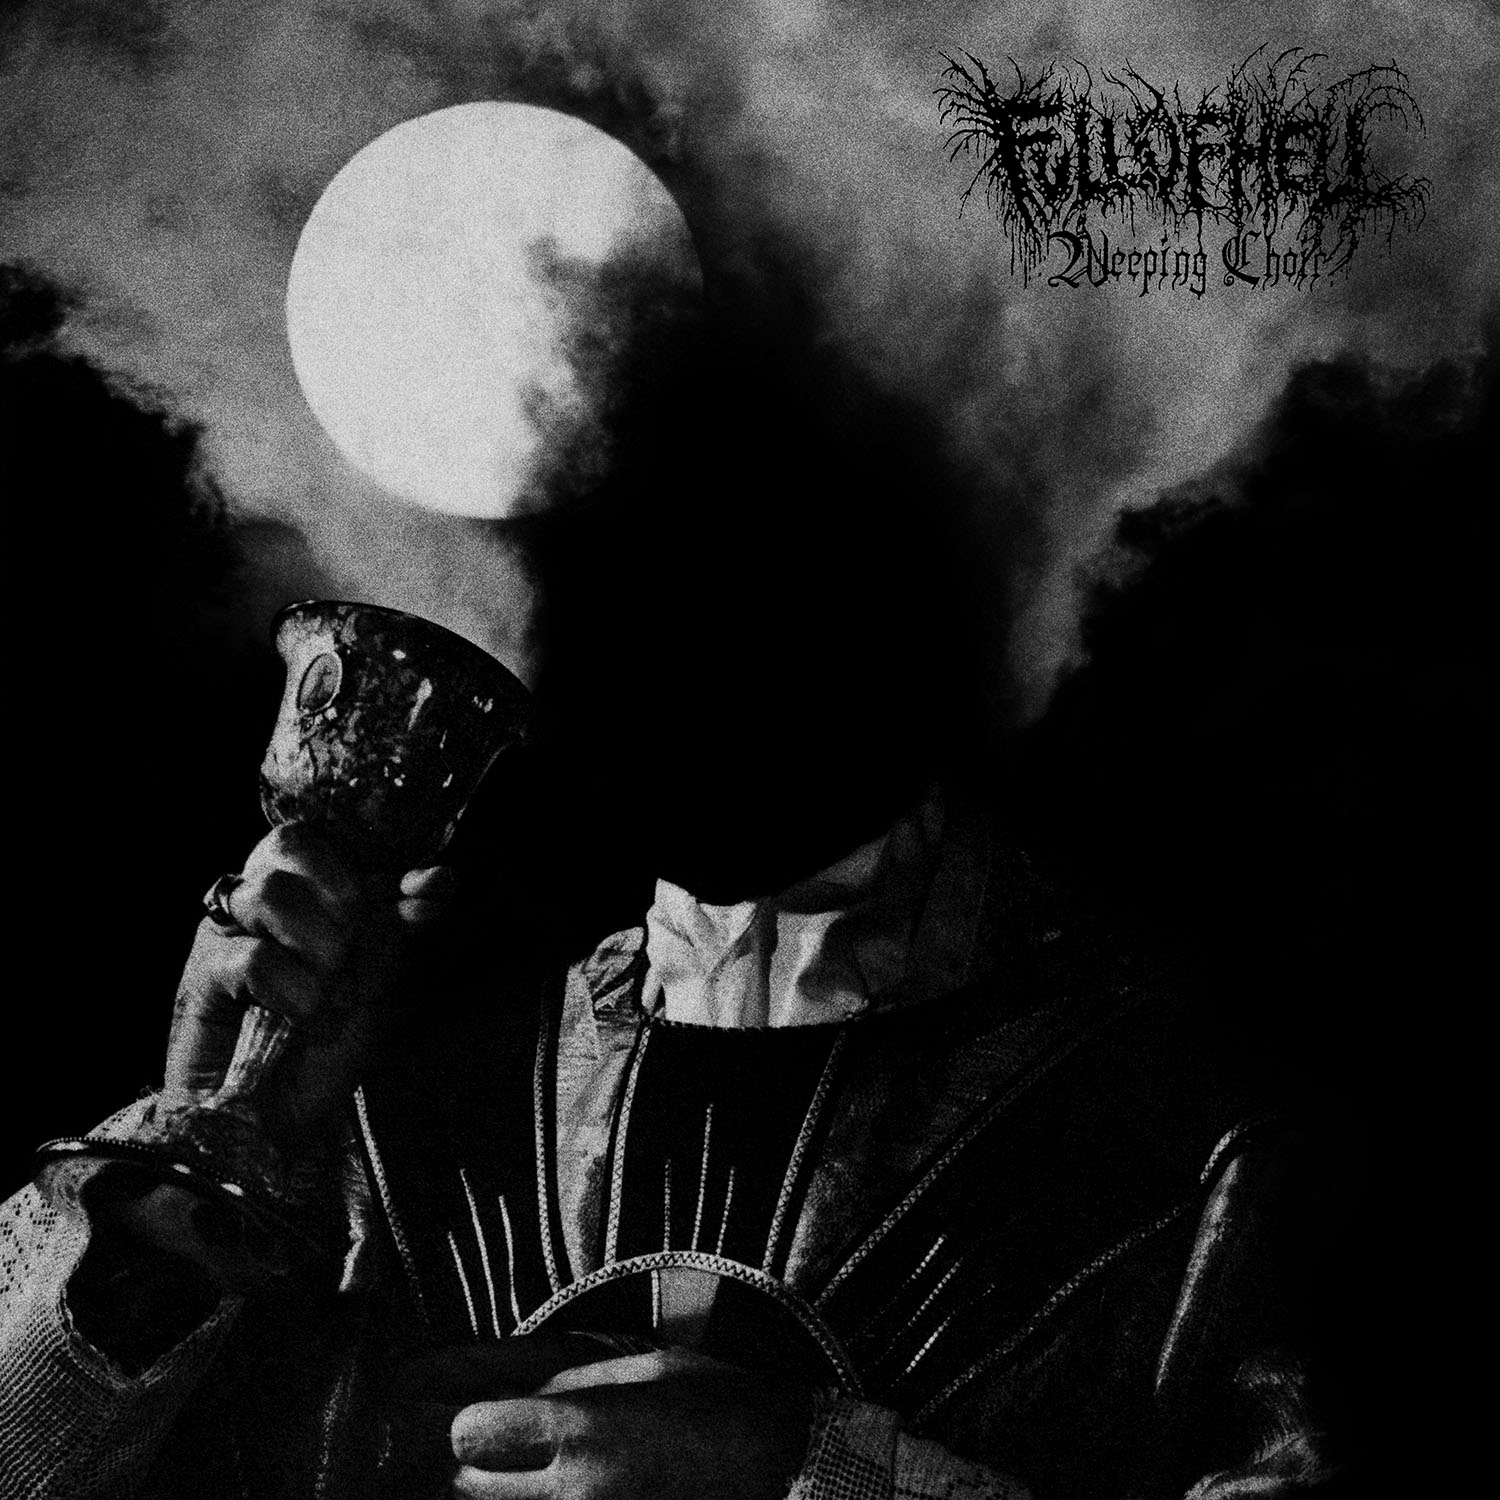 Full of Hell - Weeping Choir